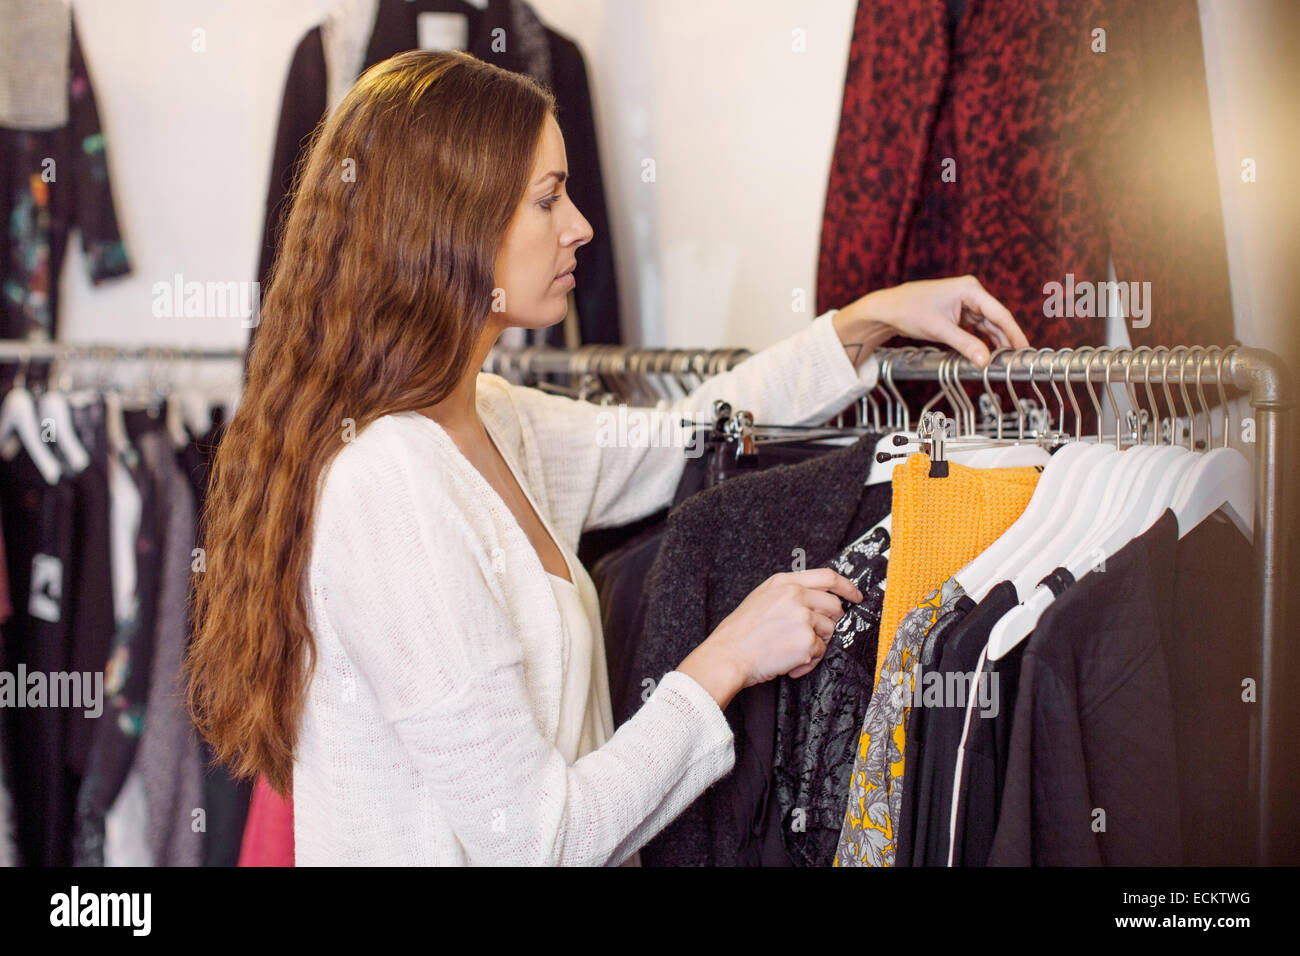 Female sales person arranging cloths in clothing store Stock Photo